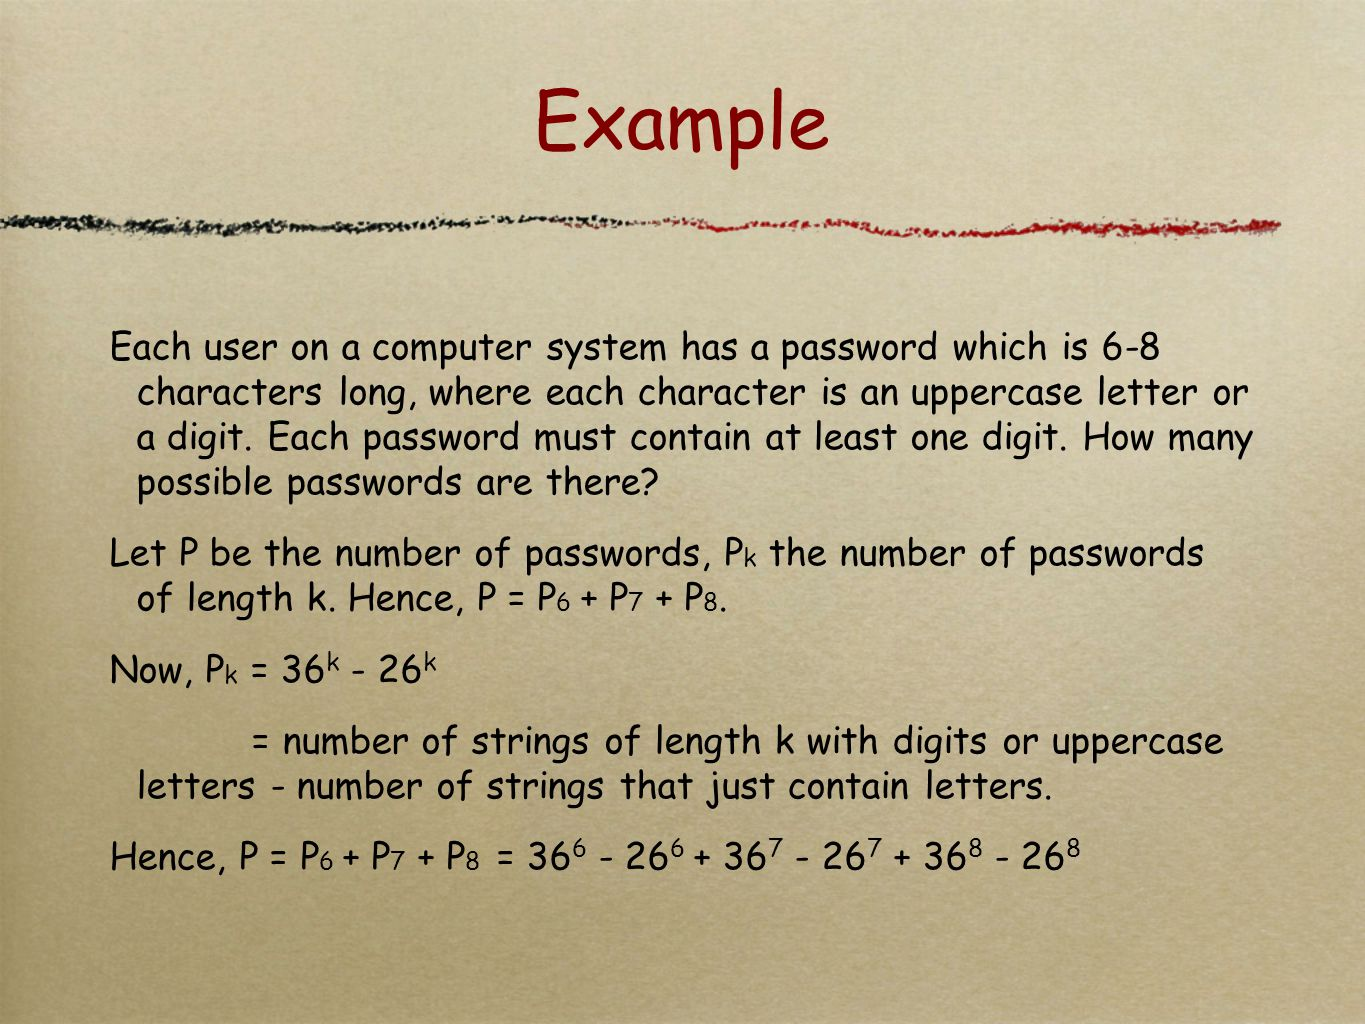 Example Each user on a computer system has a password which is 6-8 characters long, where each character is an uppercase letter or a digit. Each passw